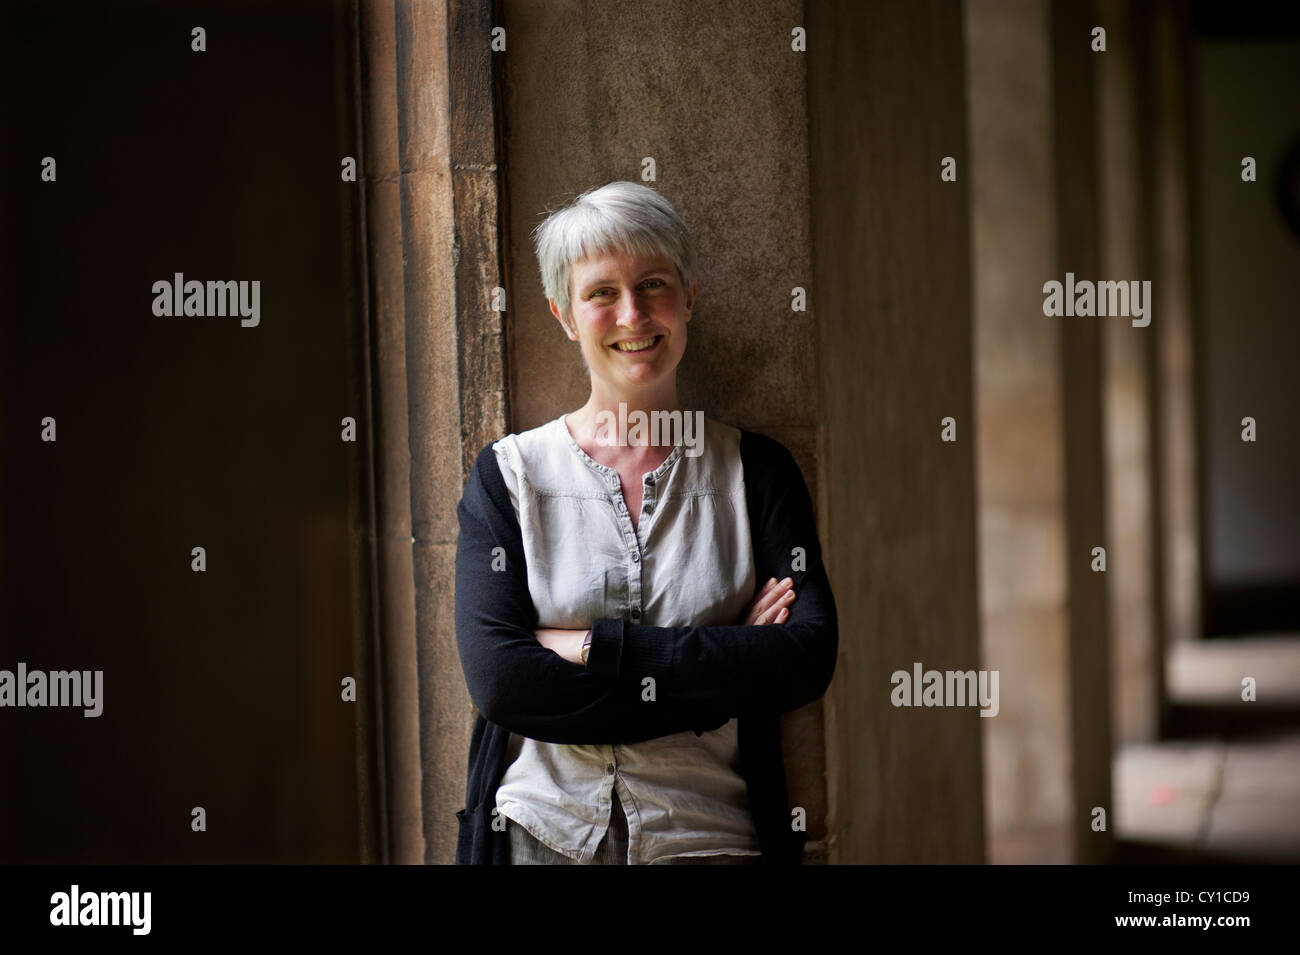 Dr Mary Laven, Senior Lecturer in the faculty of History at Jesus College, Cambridge University, England, UK. - Stock Image